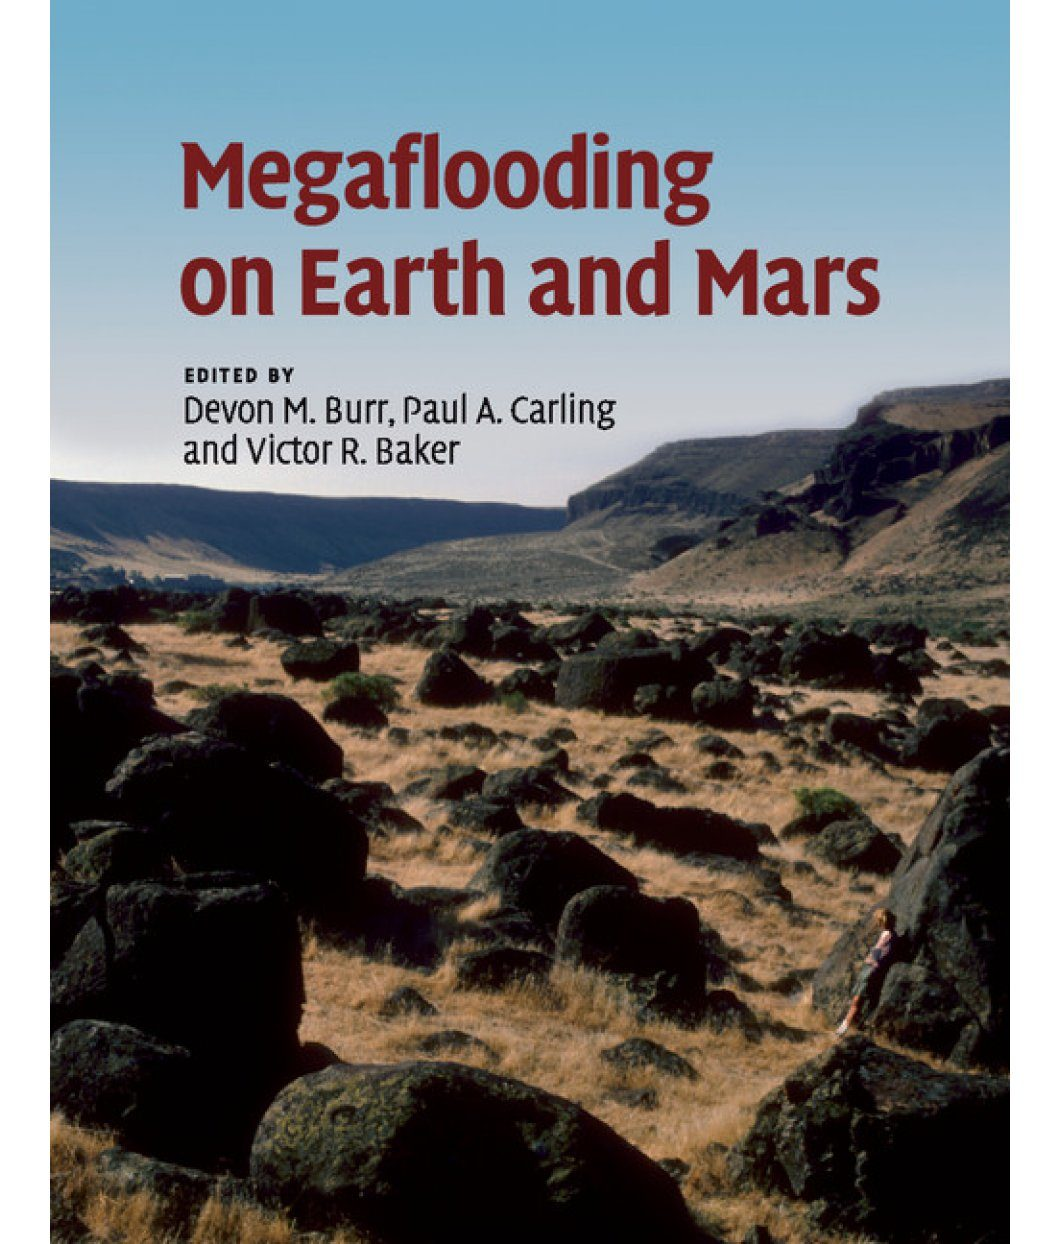 Megaflooding on Earth and Mars